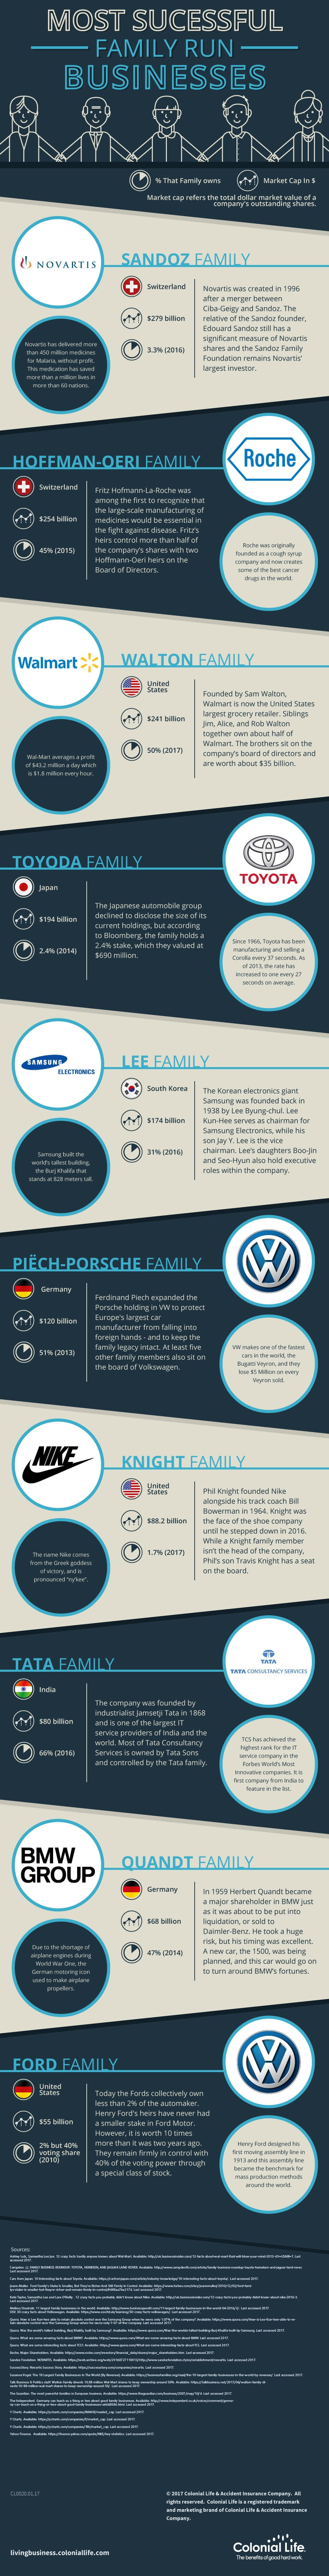 Infographic illustrating the success of different family run businesses